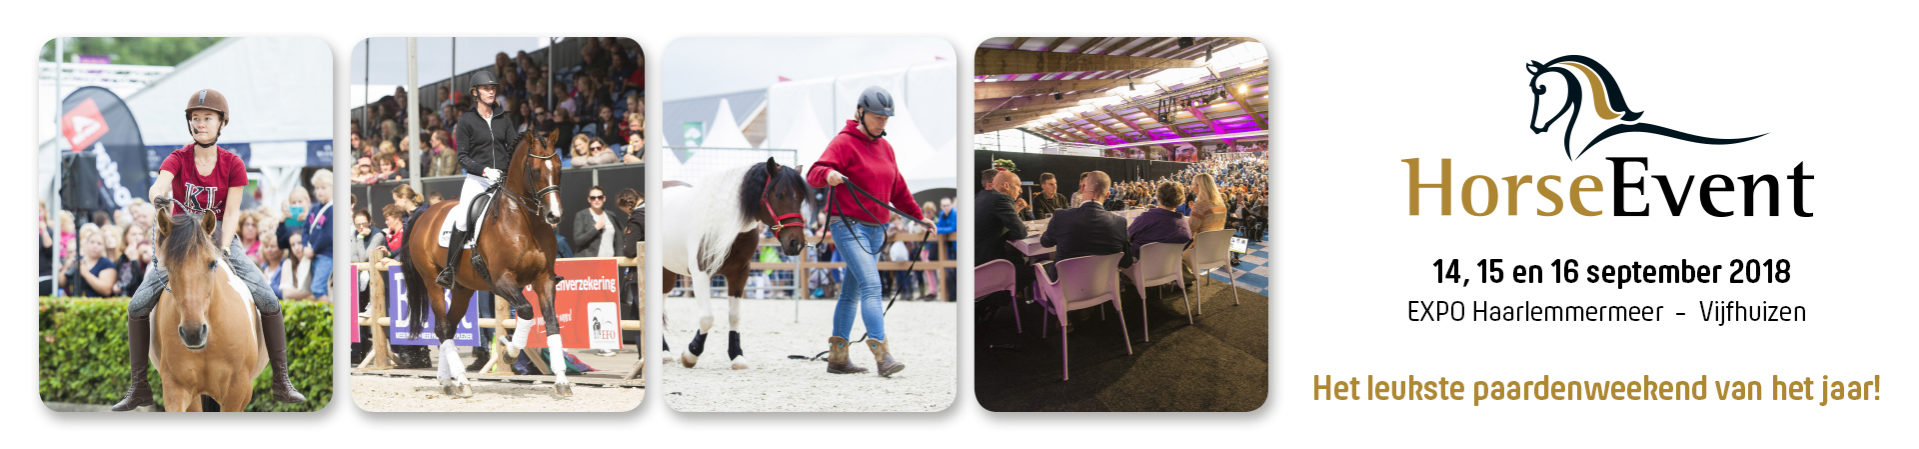 Horse Event 20181920x450 Ticketpoint